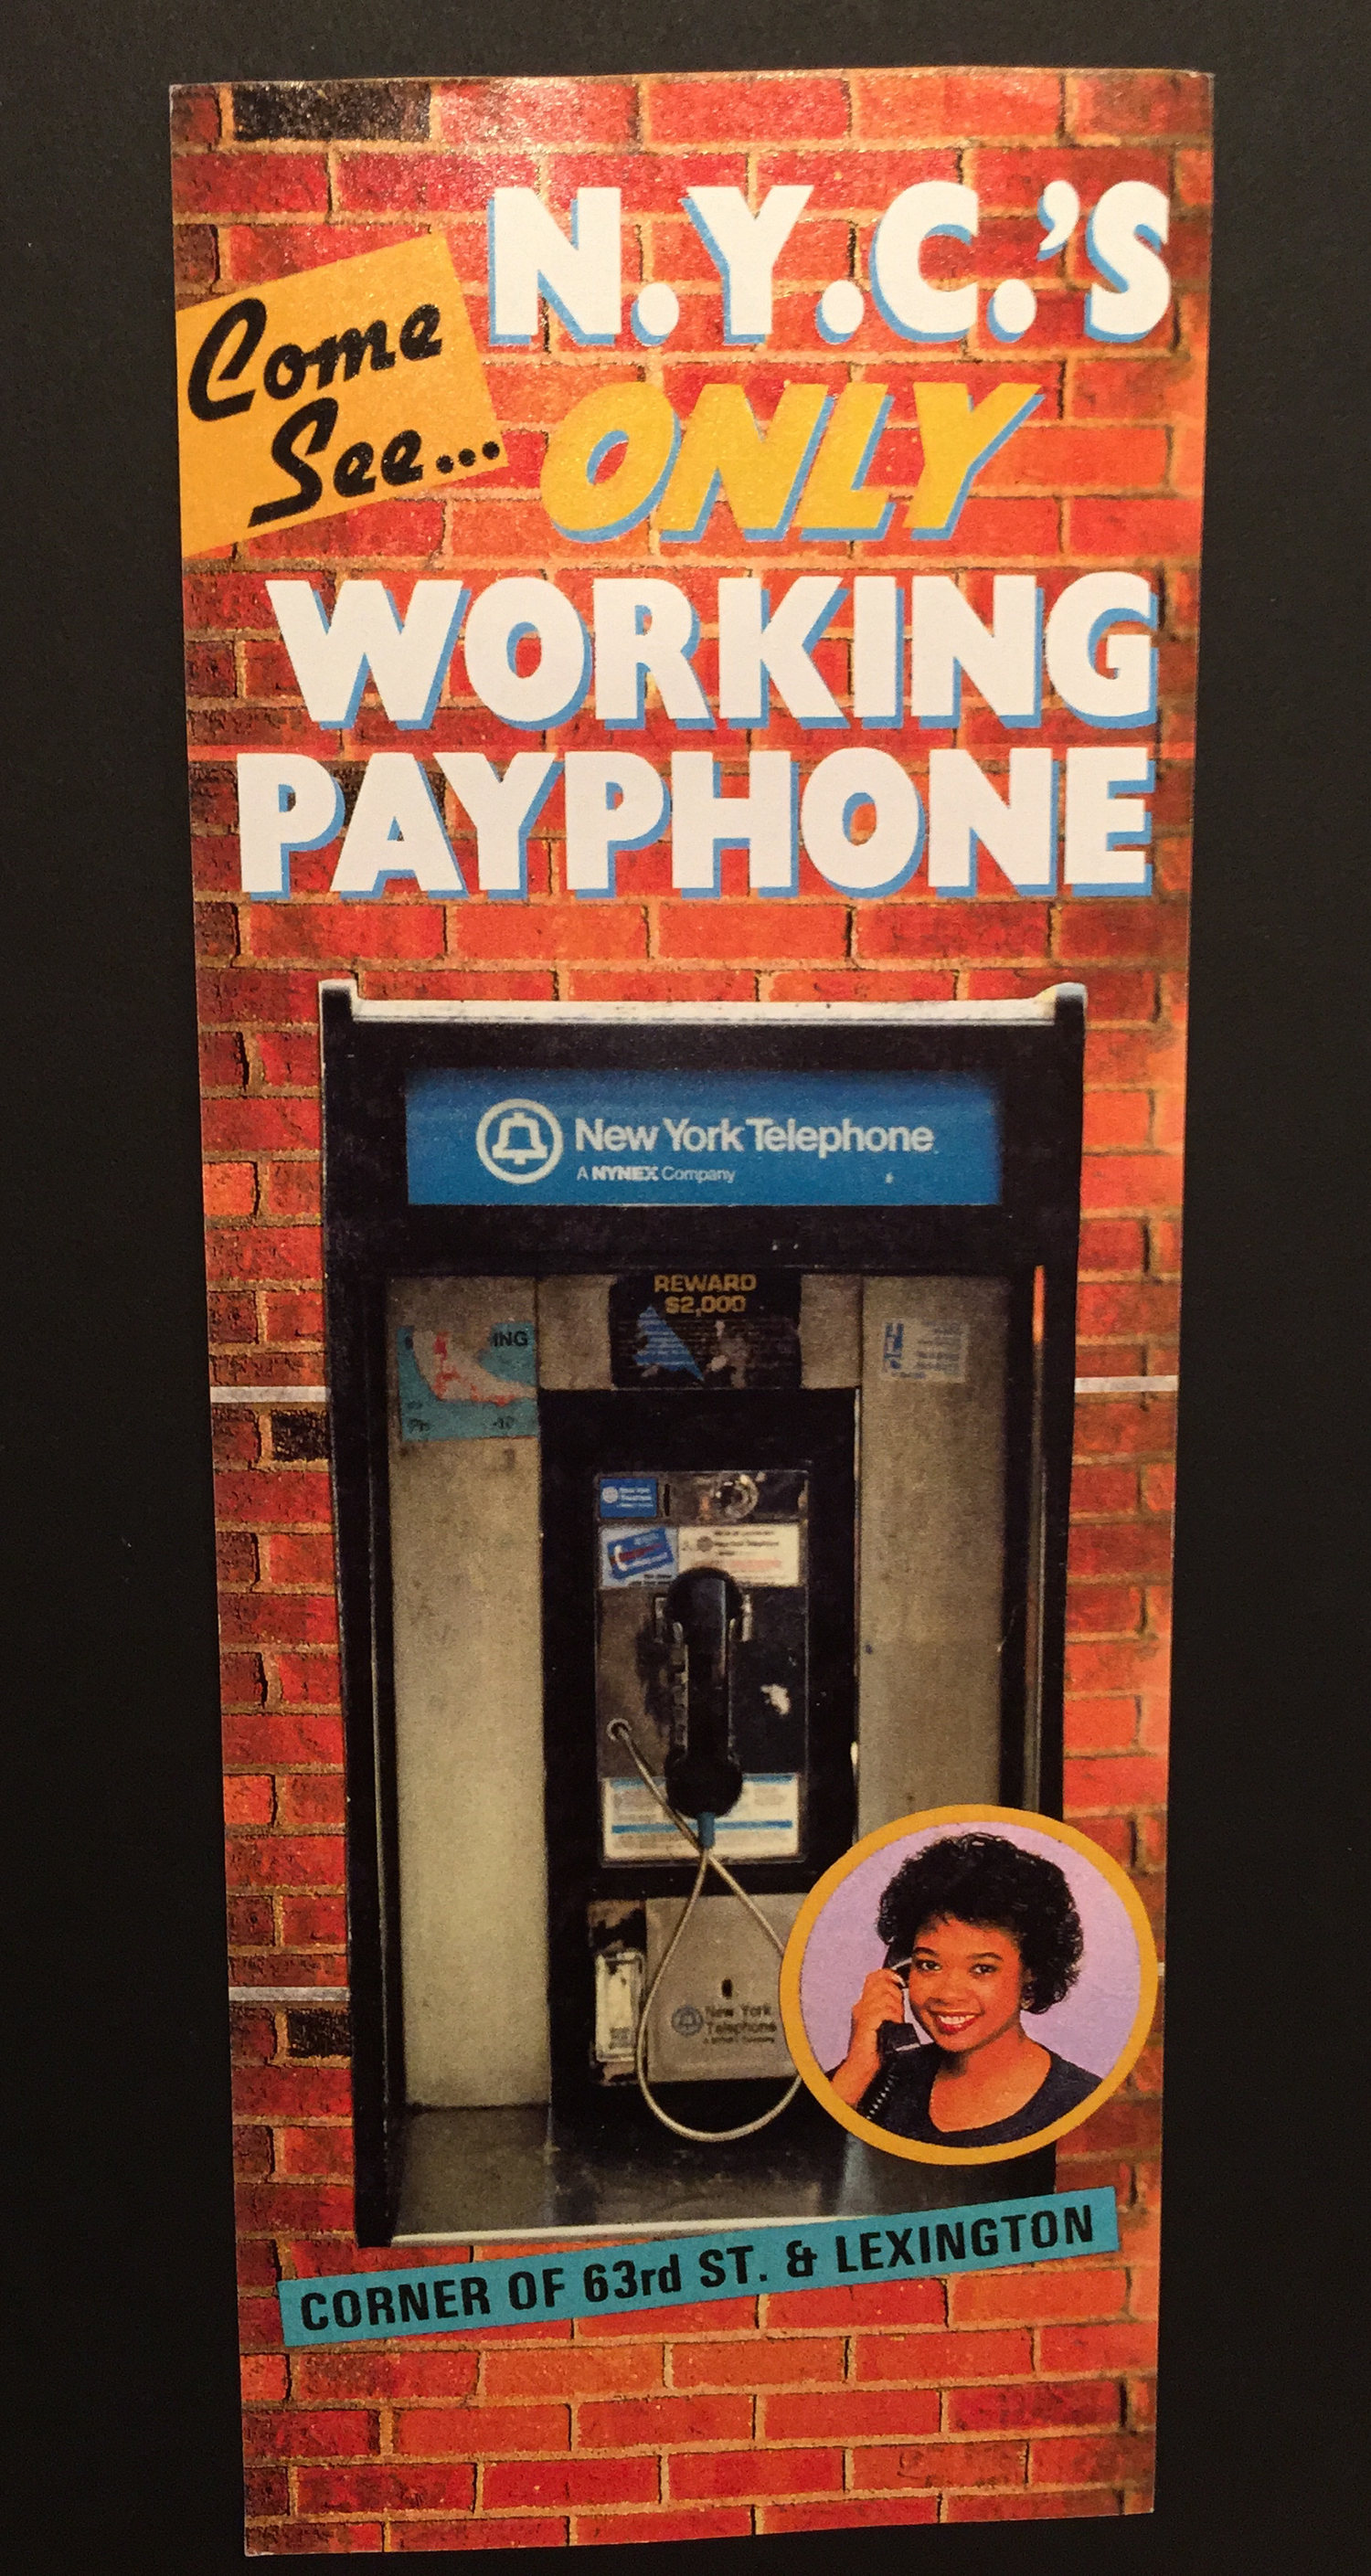 LN-Payphone-brochure.jpg